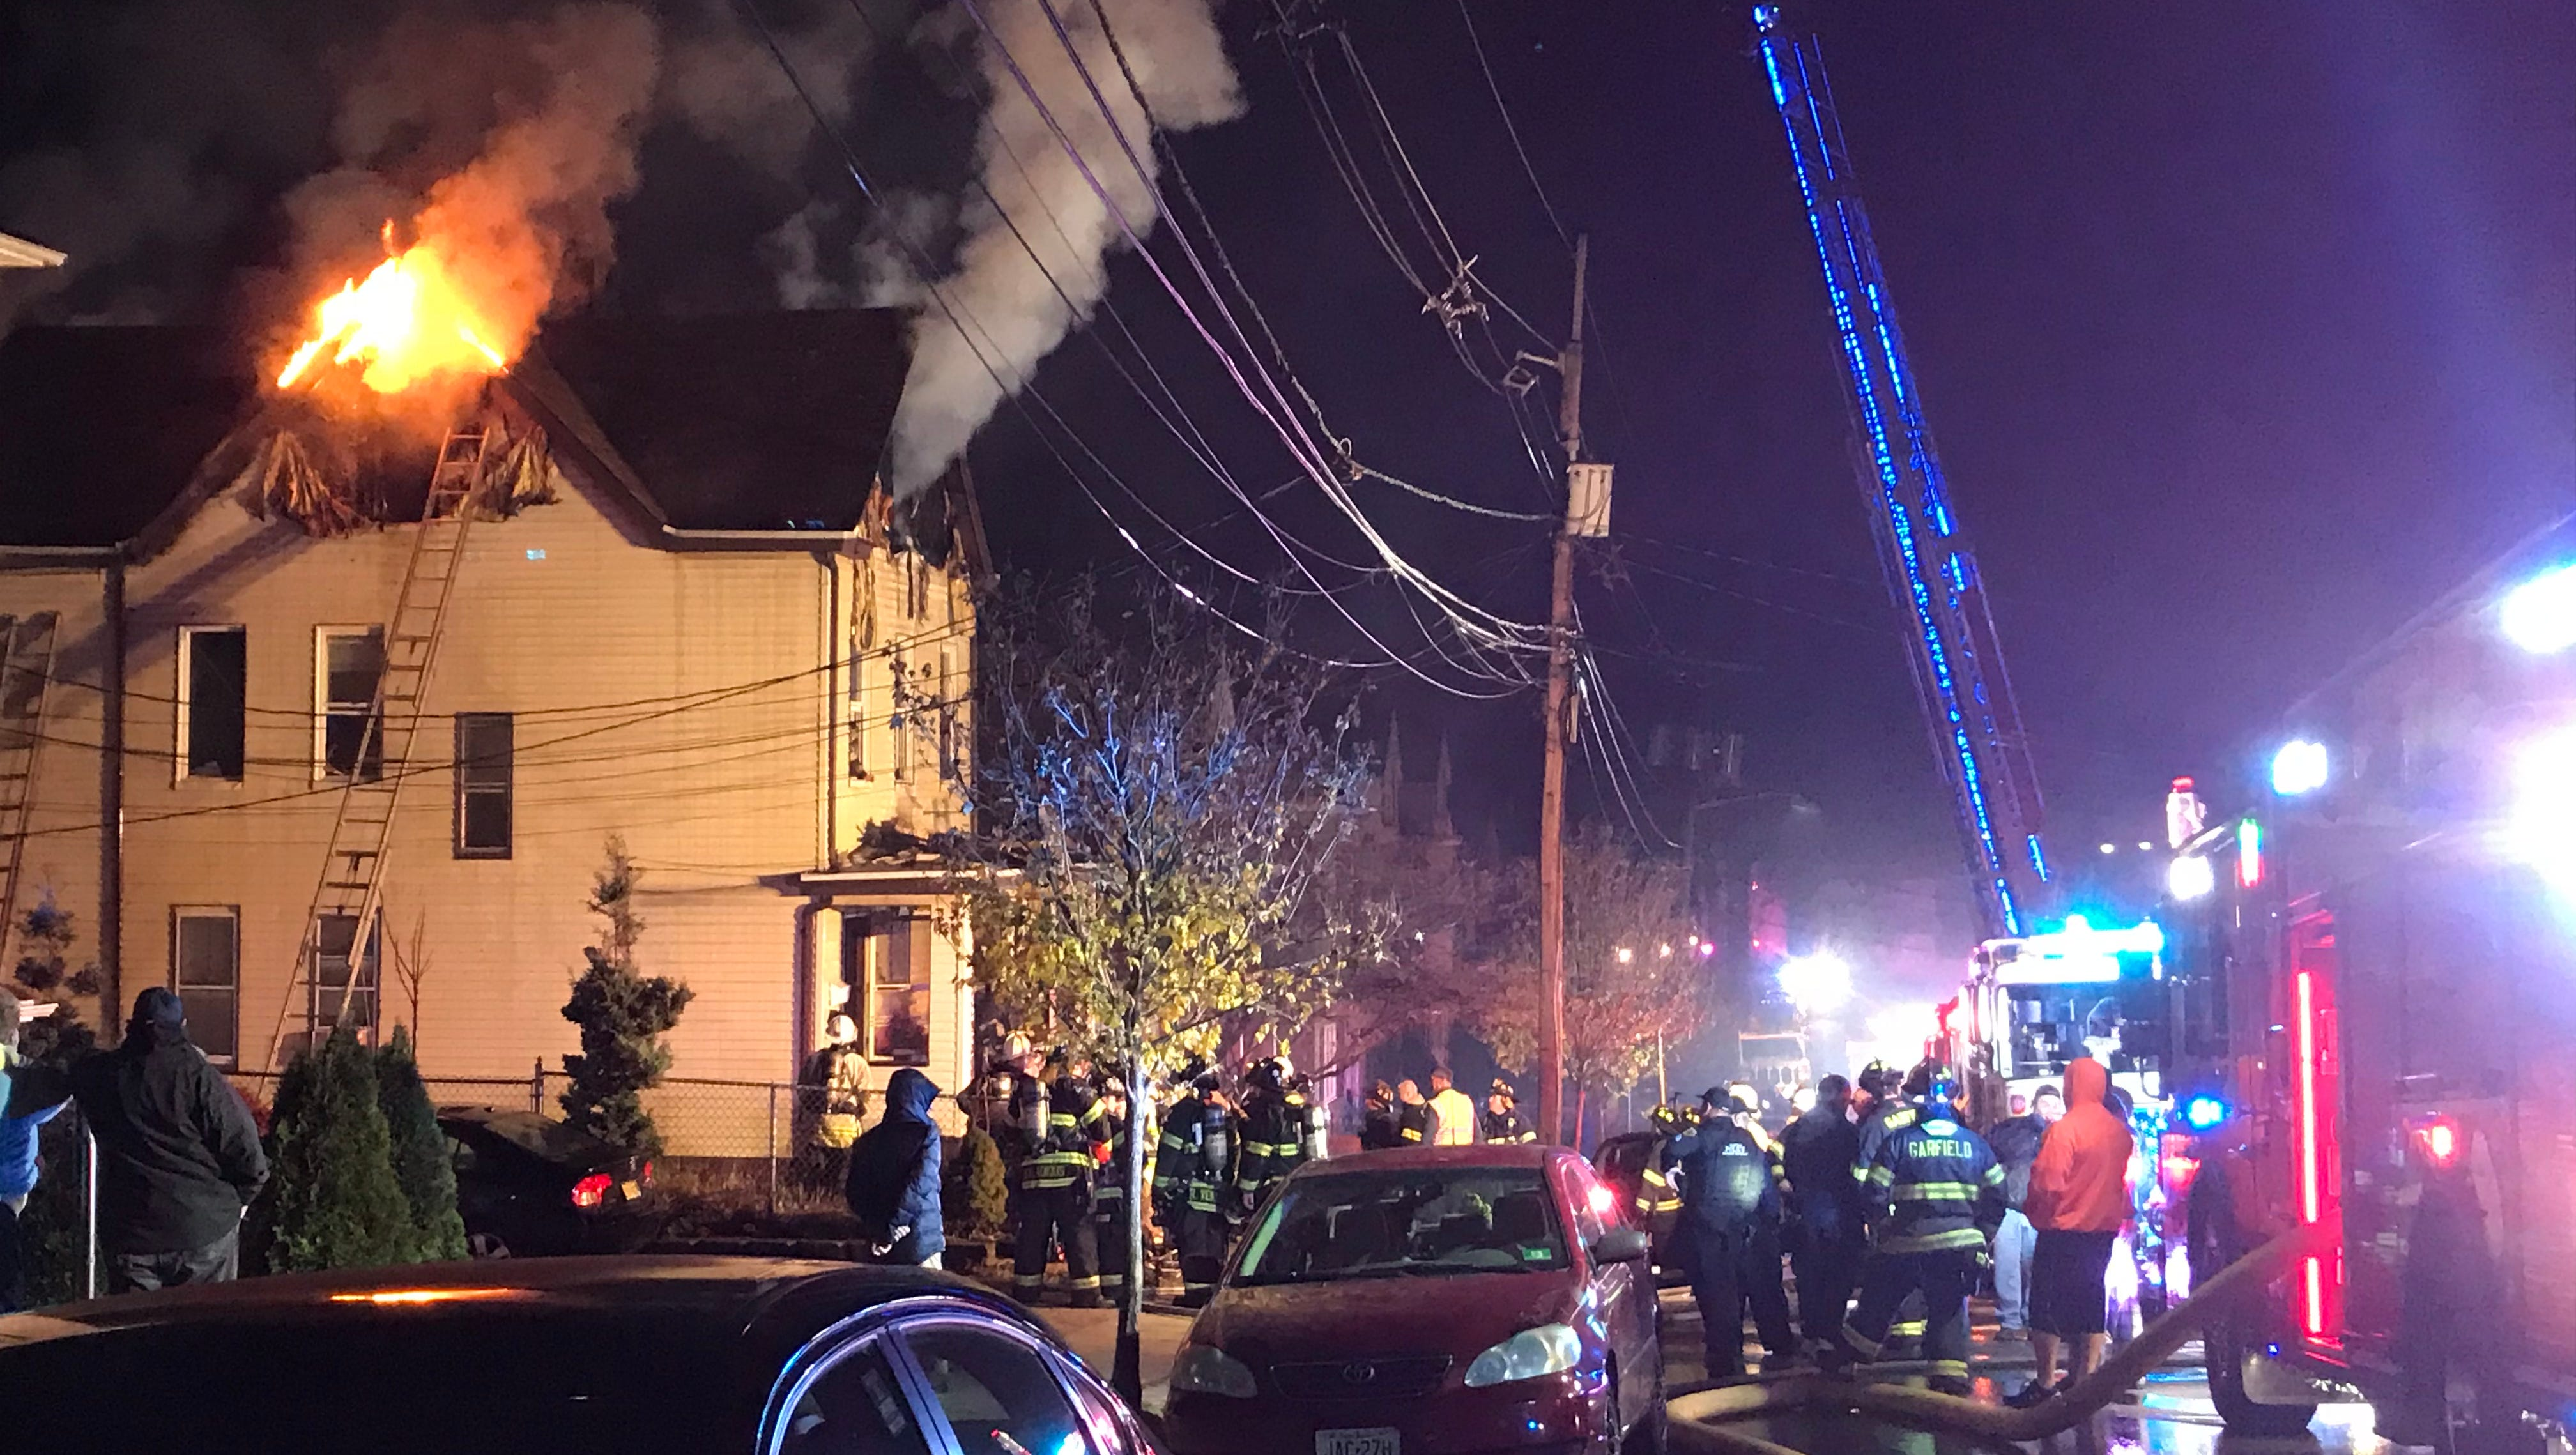 Garfield Nj Electrical Issue Caused House Fire